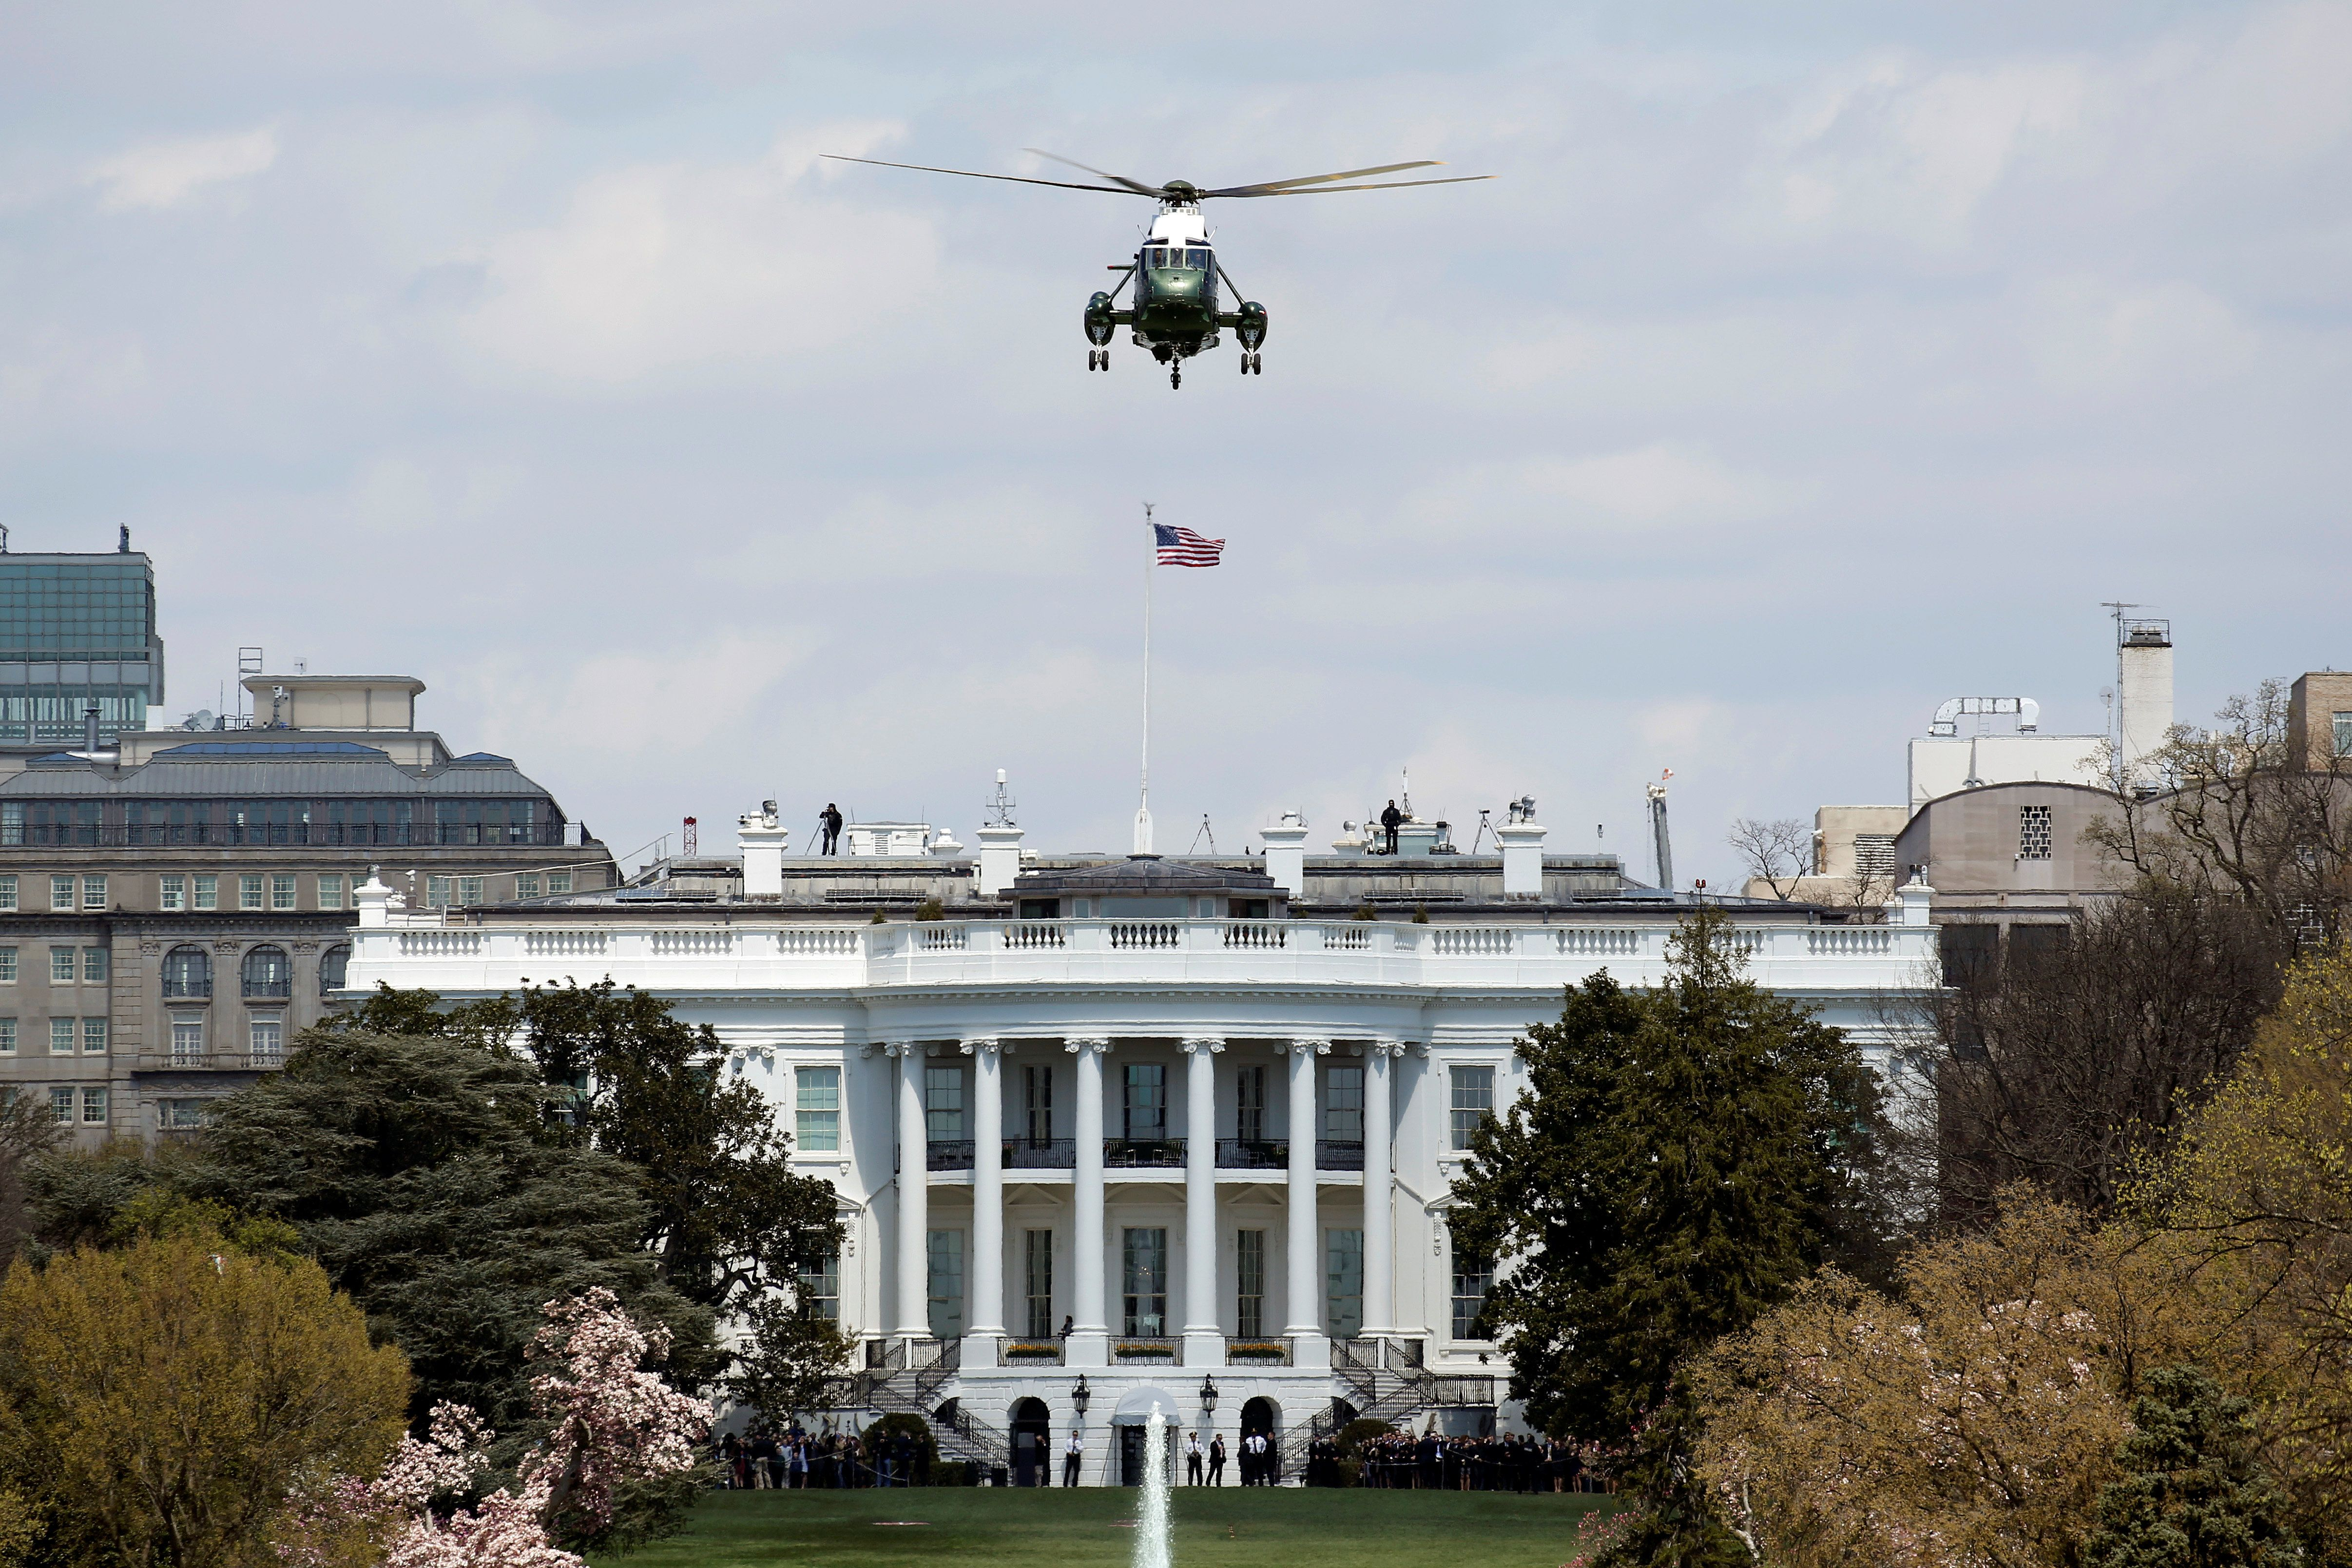 Marine One carrying U.S. President Donald Trump takes off from the South Lawn of the White House in Washington, U.S., April 5, 2018. REUTERS/Joshua Roberts